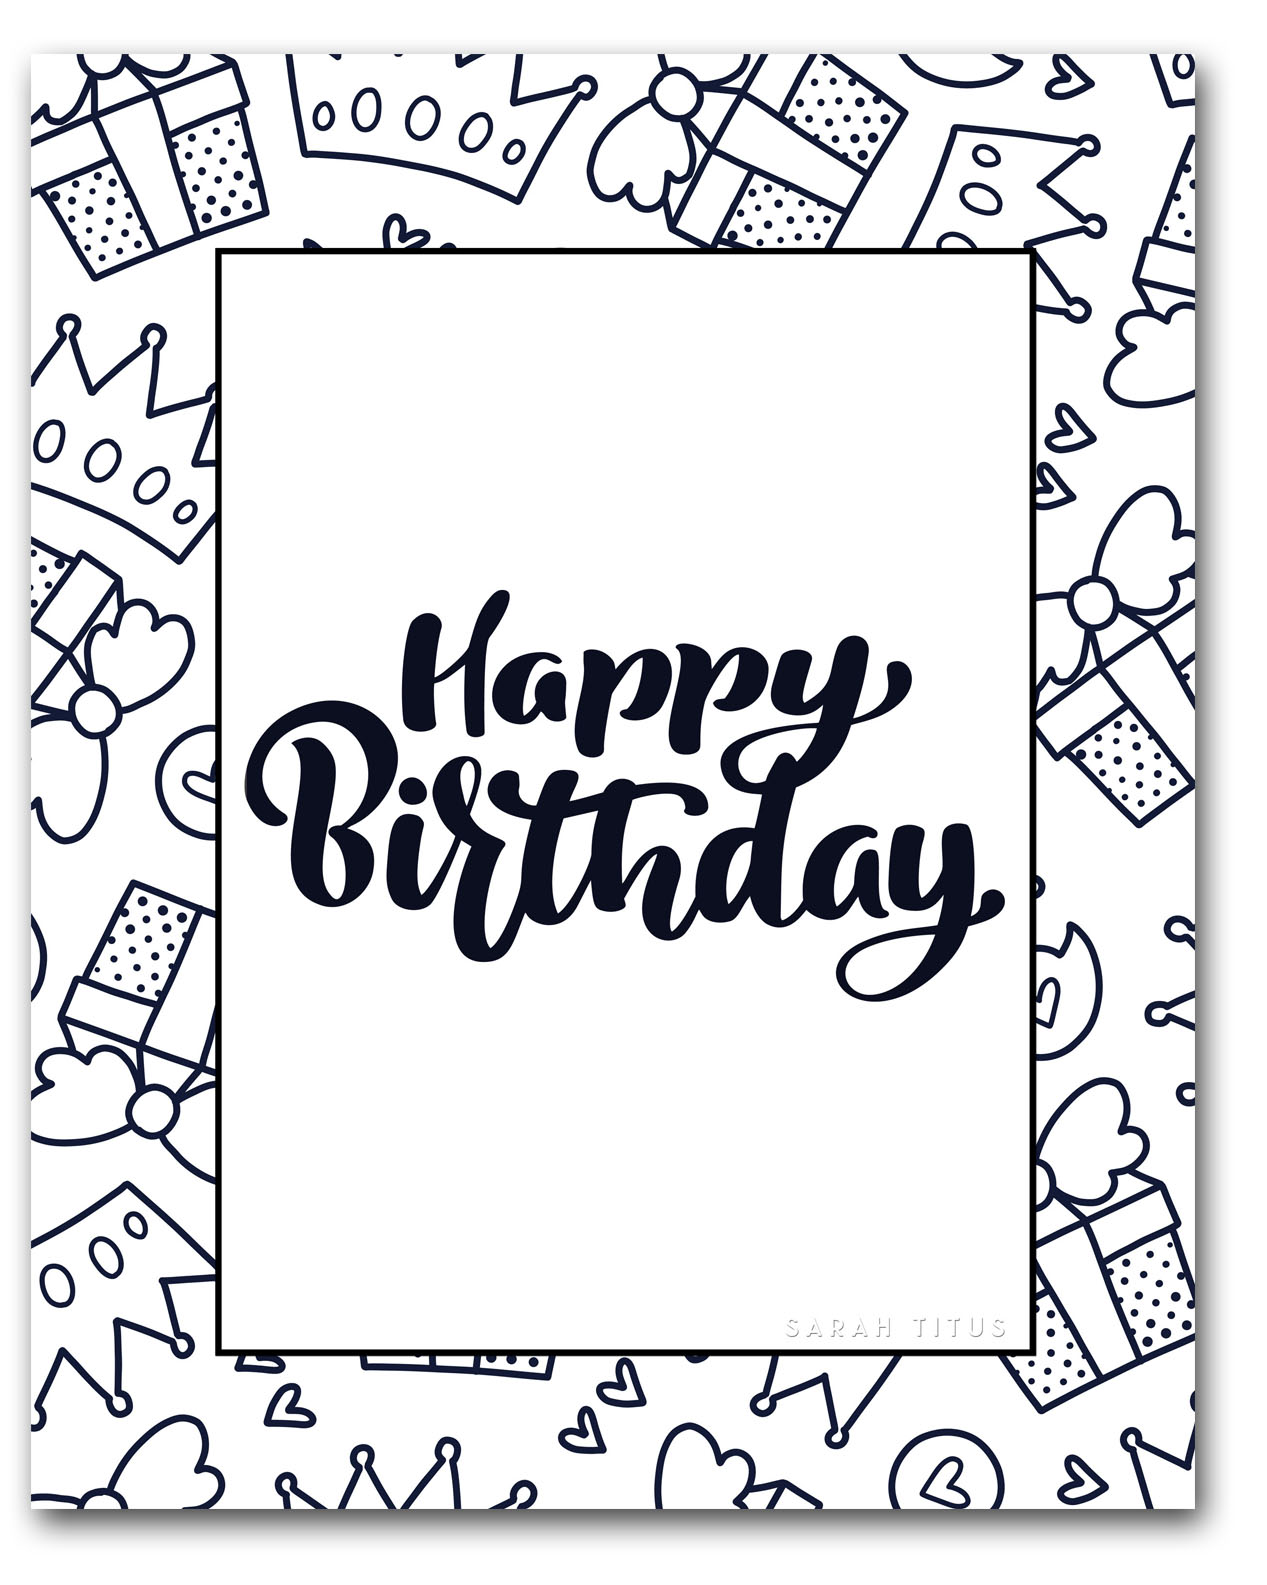 Coloring Pages Online: Happy Birthday and balloons coloring pages | 1585x1267